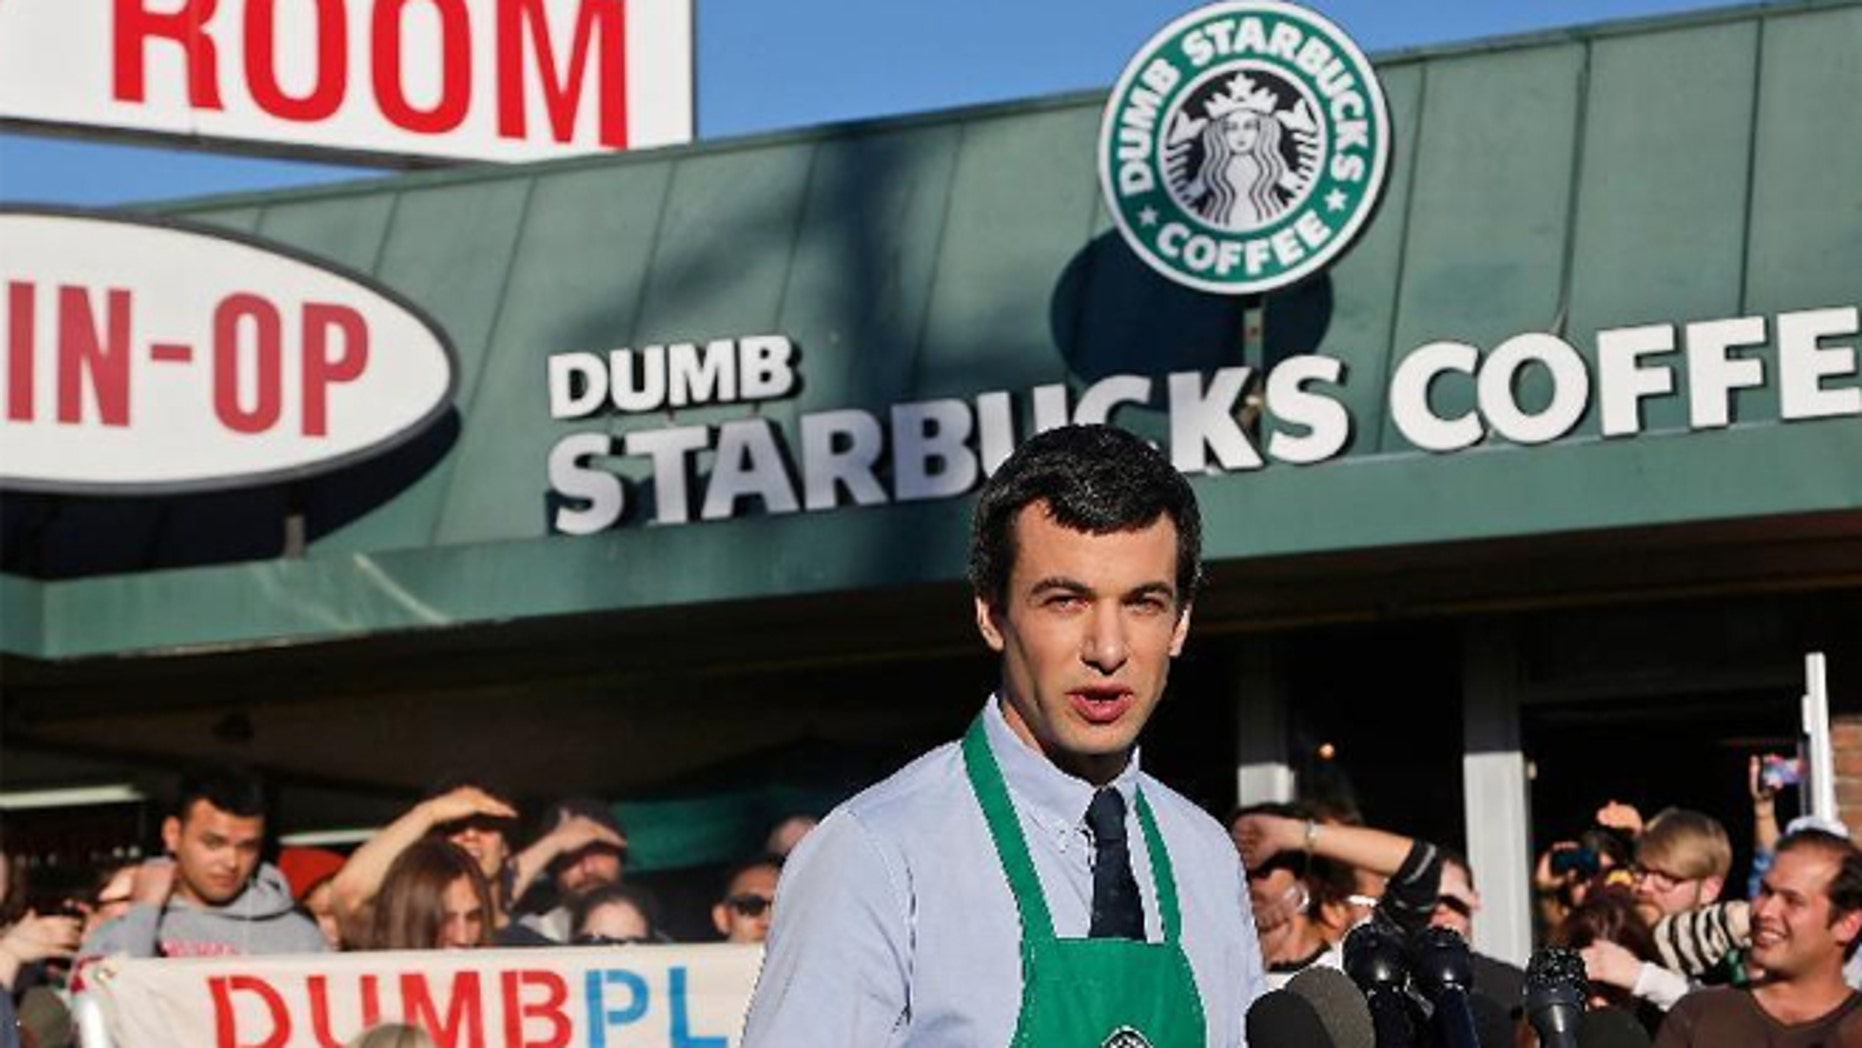 """Comedian Nathan Fielder of the Comedy Central show """"Nathan For You"""" comes forward as the brainchild of """"Dumb Starbucks."""""""